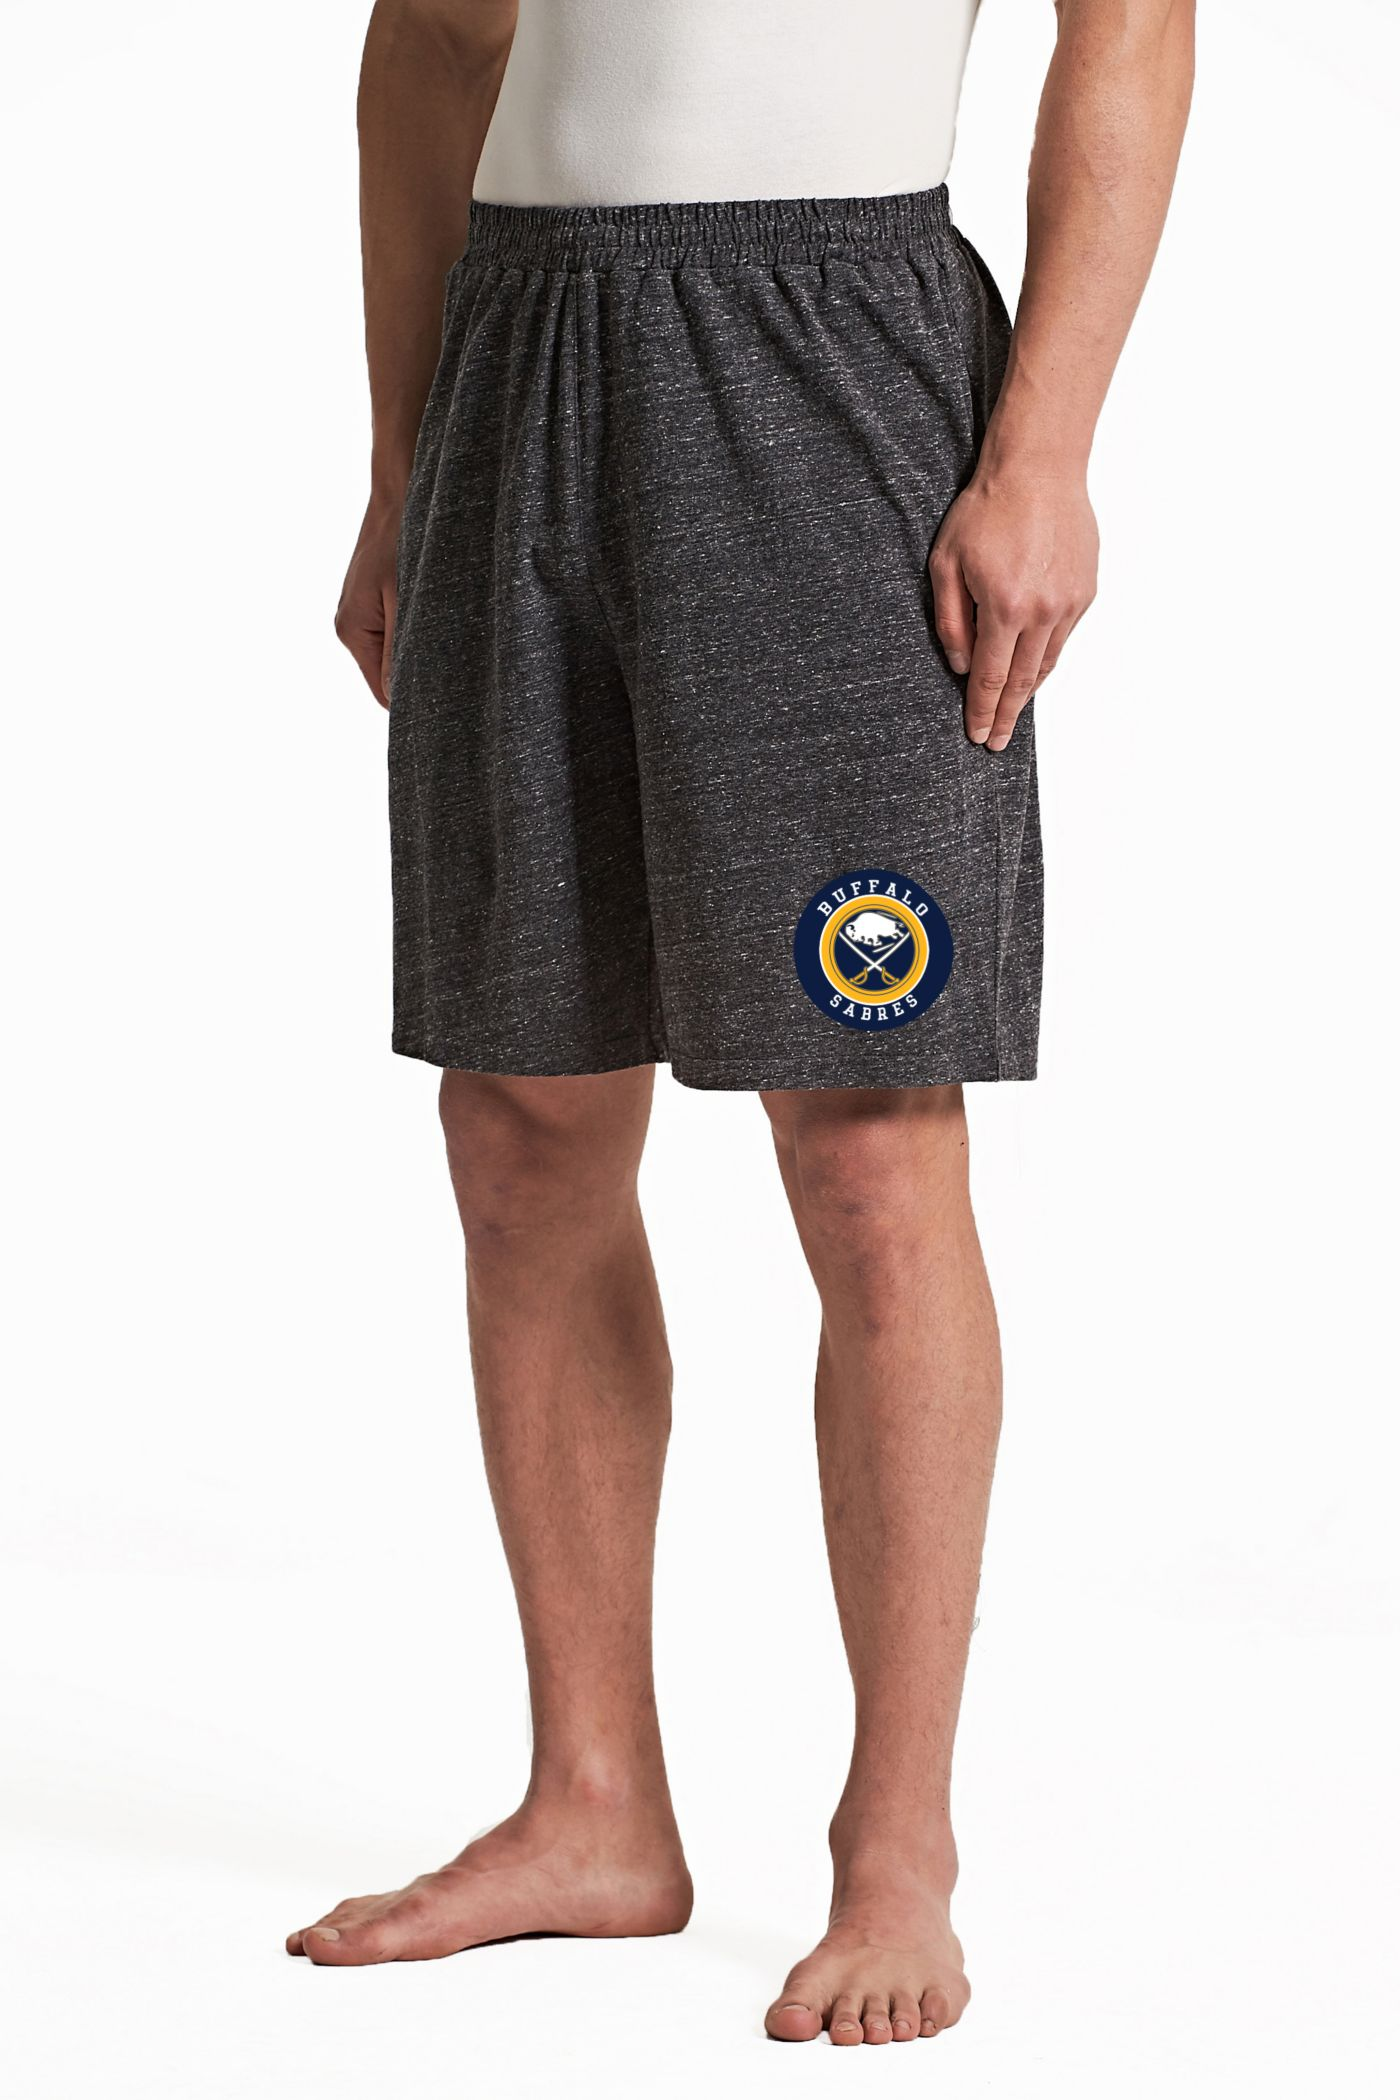 Concepts Sport Men's Buffalo Sabres Pitch Grey Shorts